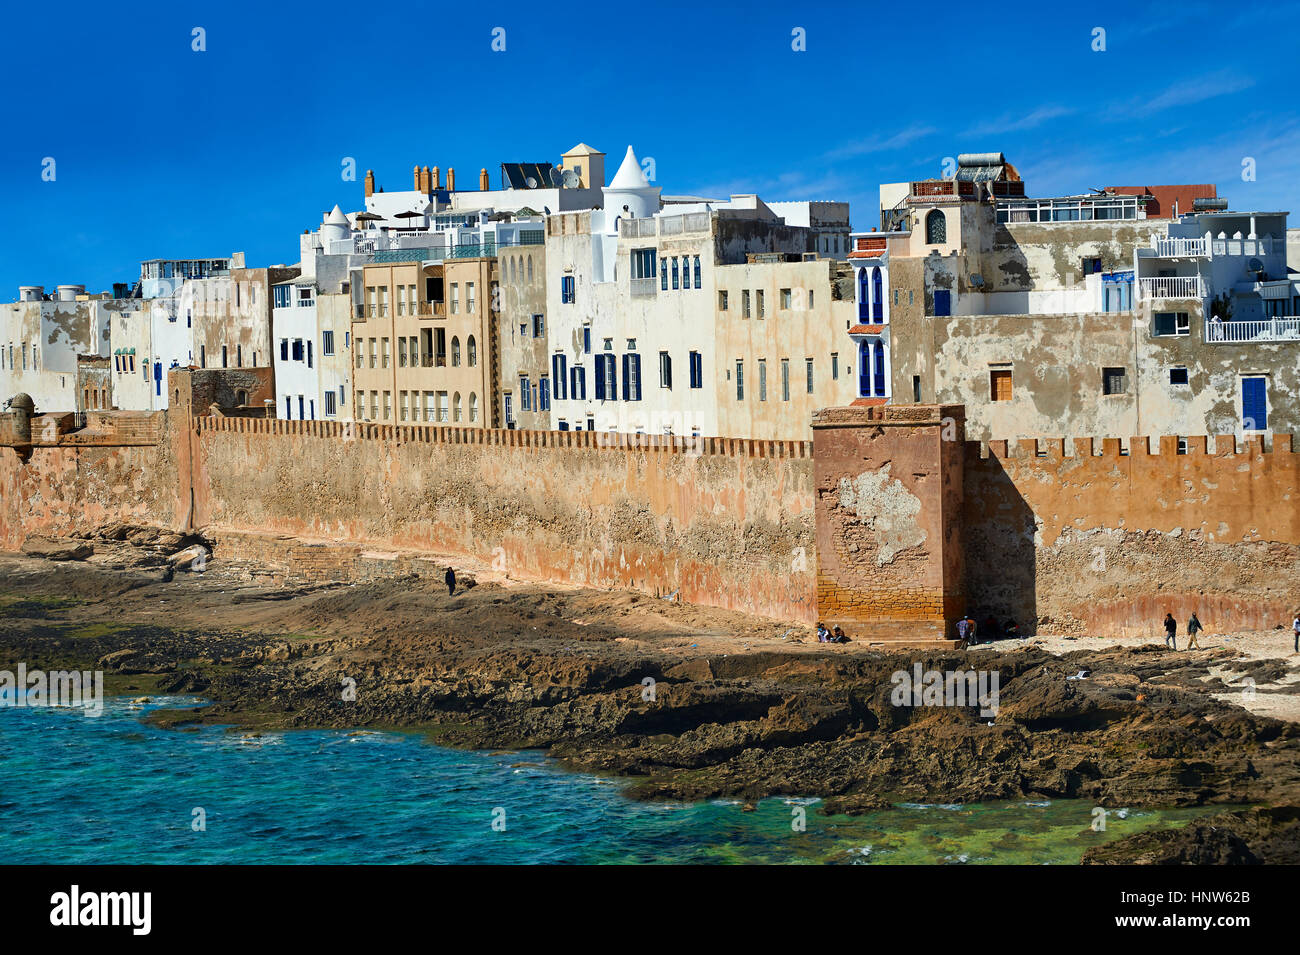 Portuguese fortifications of Mogador or Mogadore. Essaouira, Morocco - Stock Image